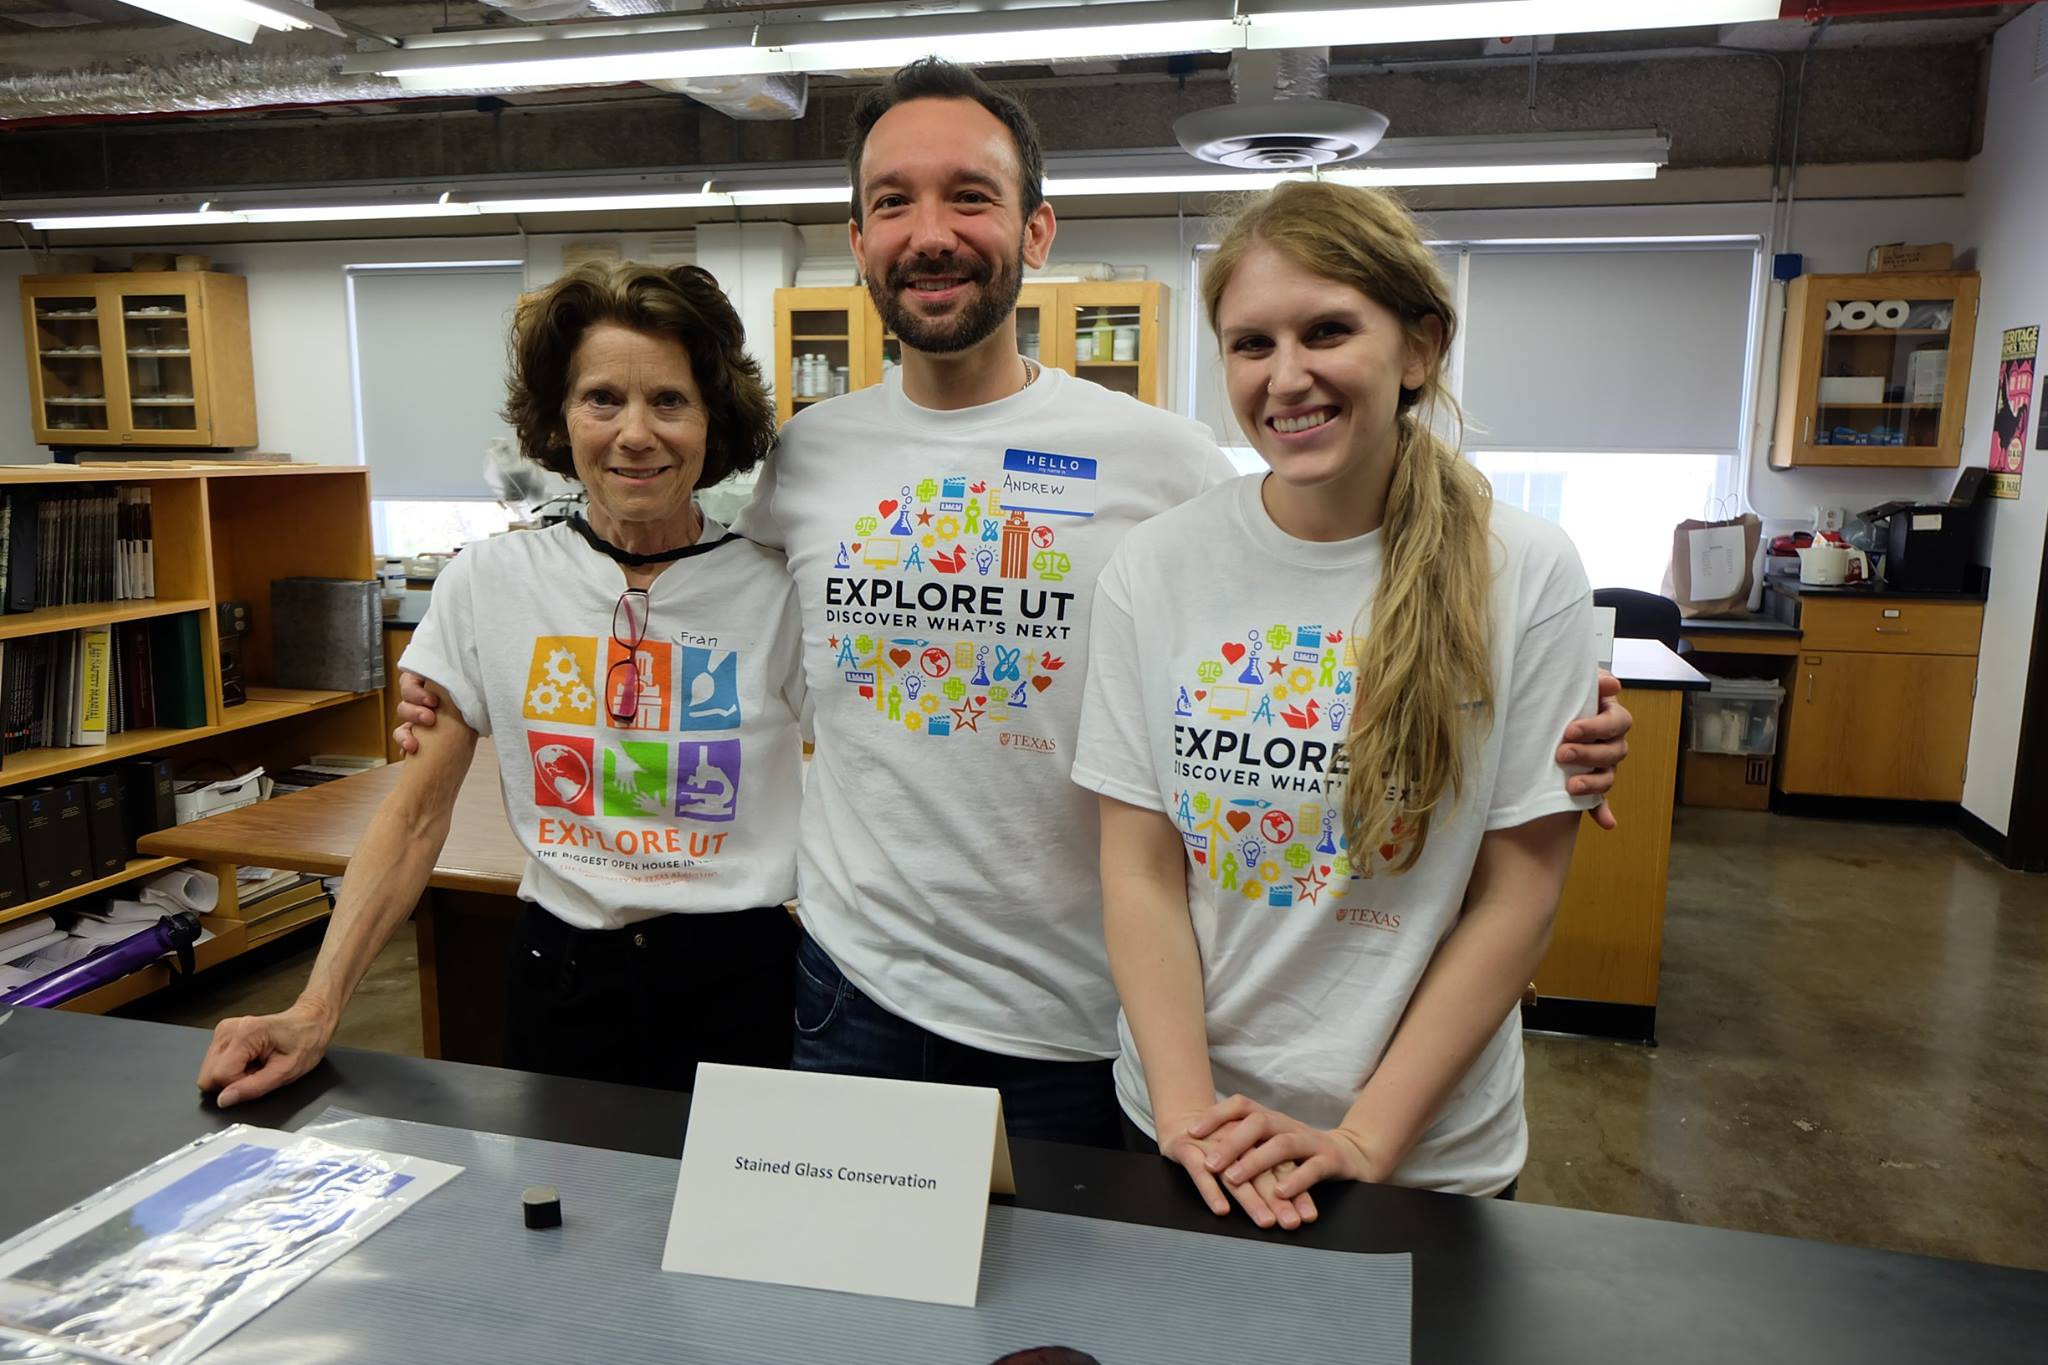 Professor Fran Gale, Andrew Leith MSHP '16, and Kelsey Riddle MSHP '17